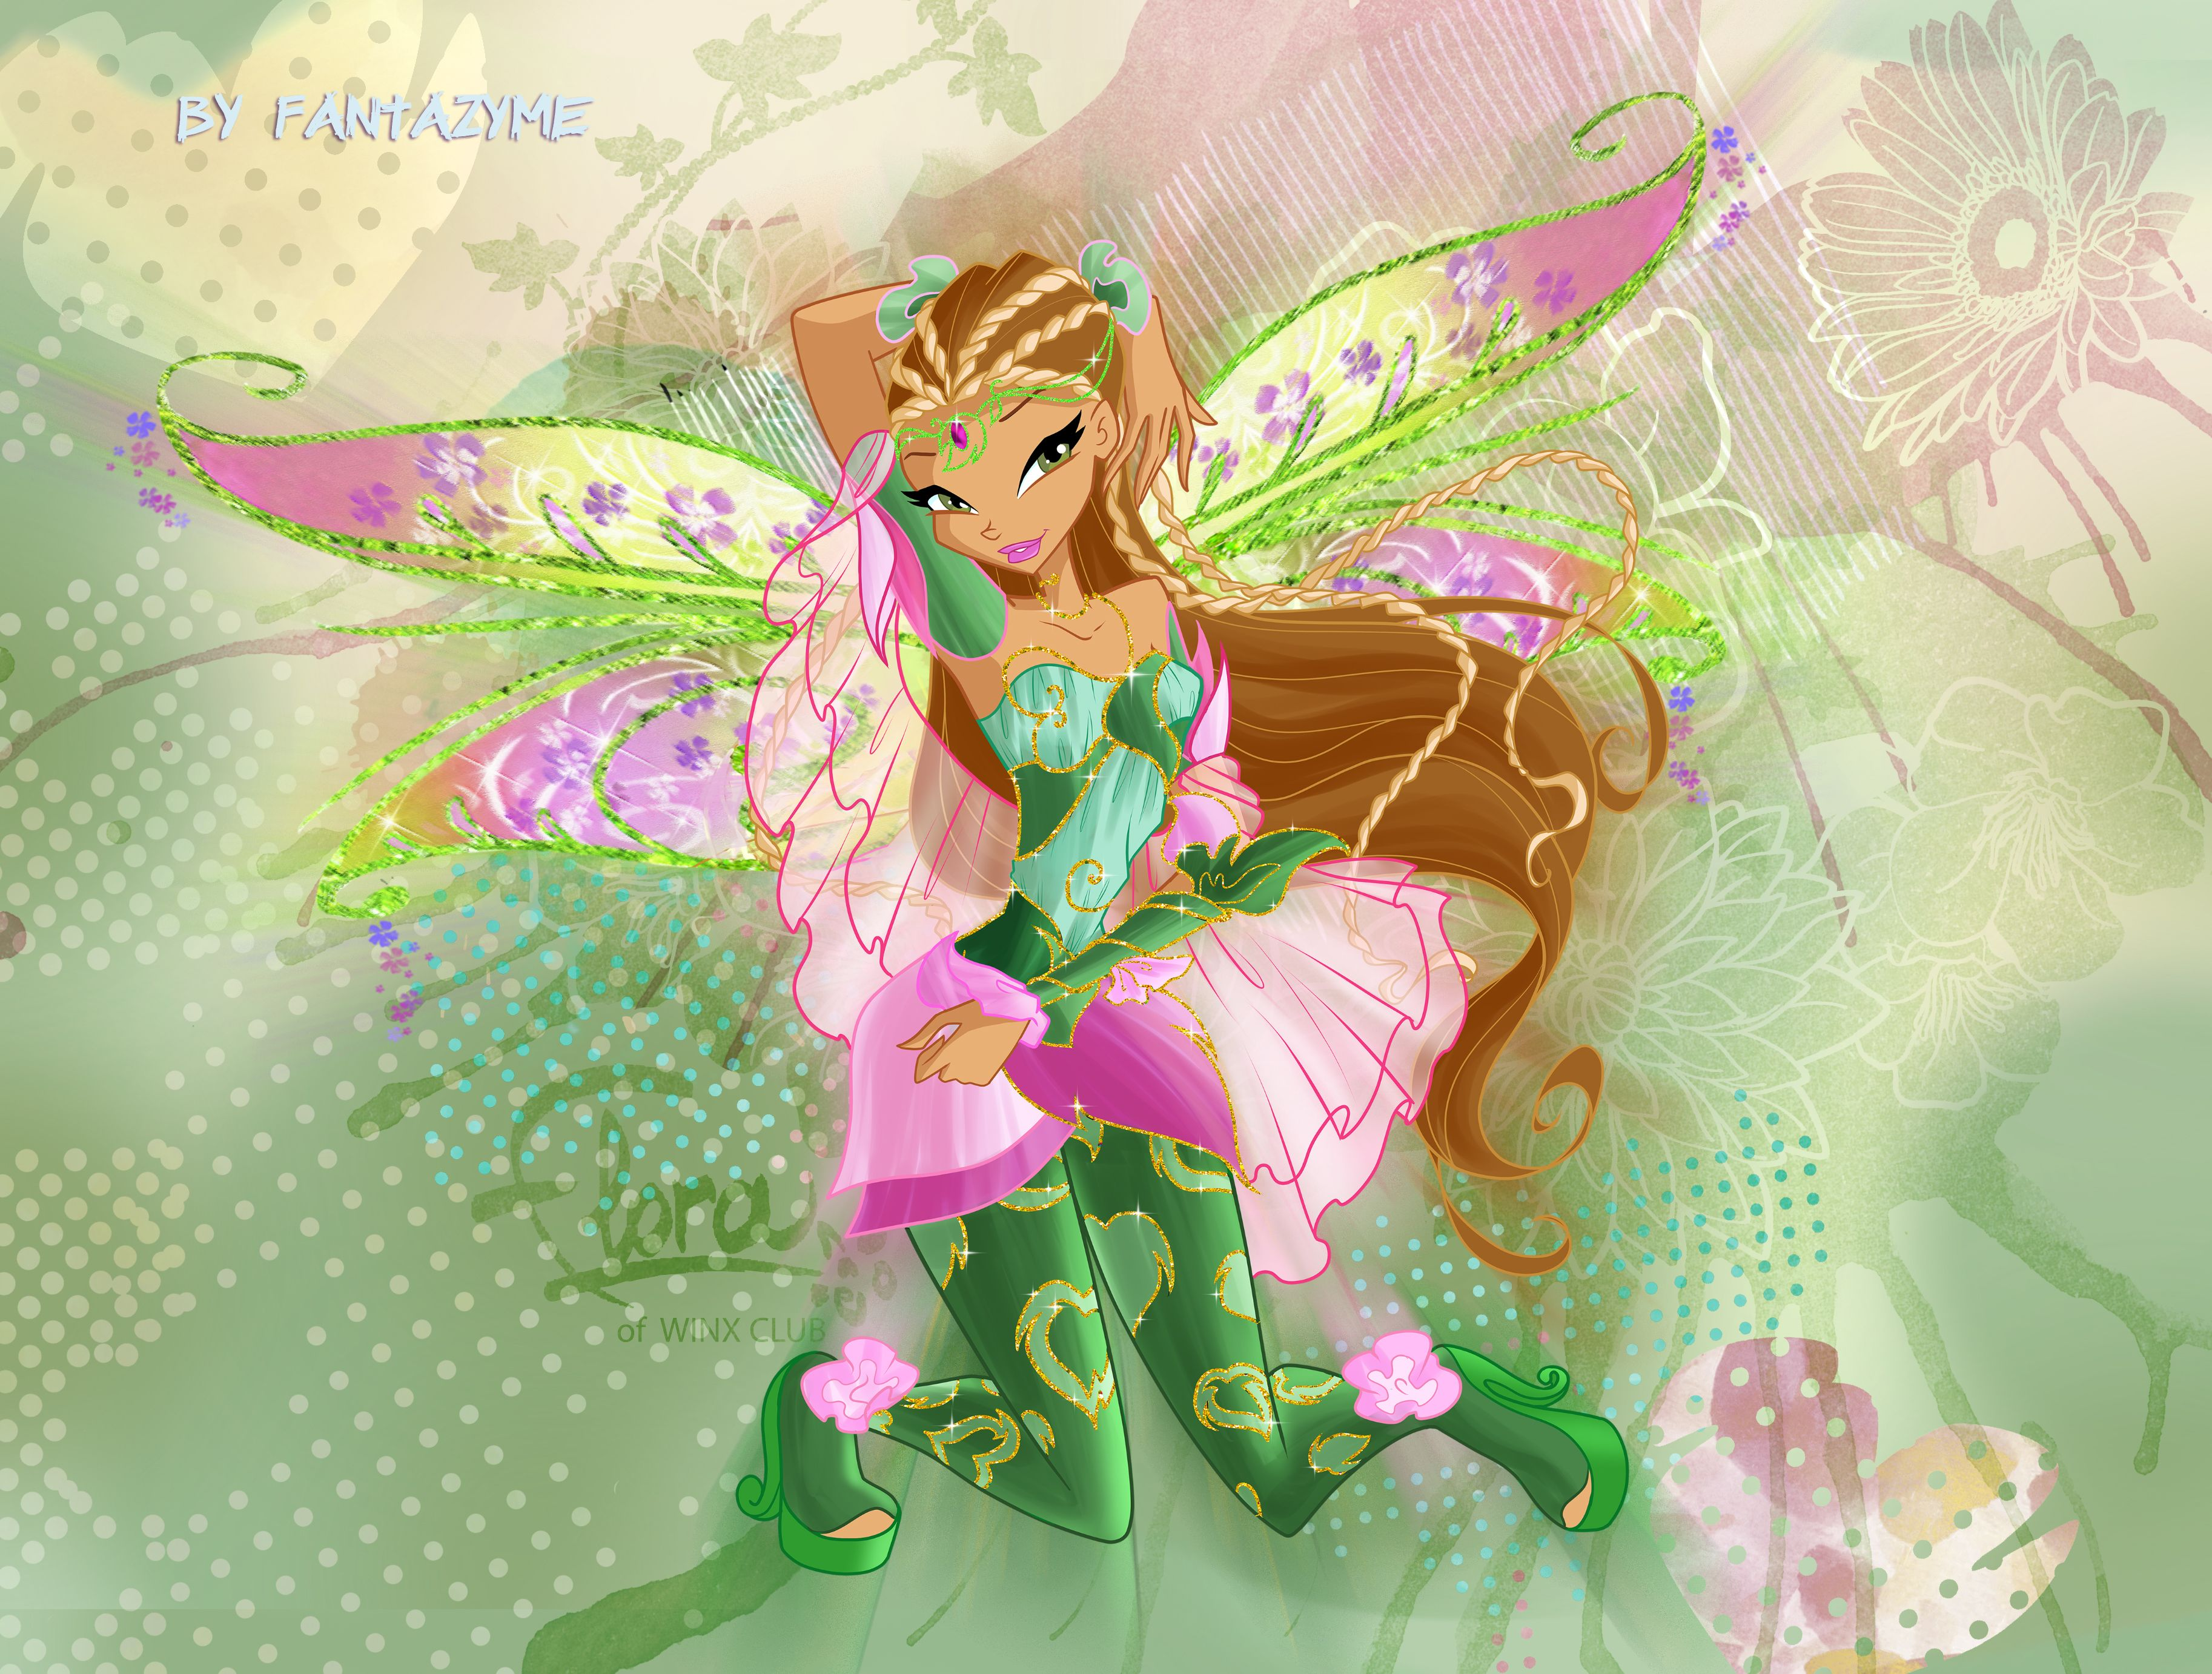 winx_club_season_6_flora_bloomix_by_fantazyme-d738i5s.jpg 3.652×2.764 piksel